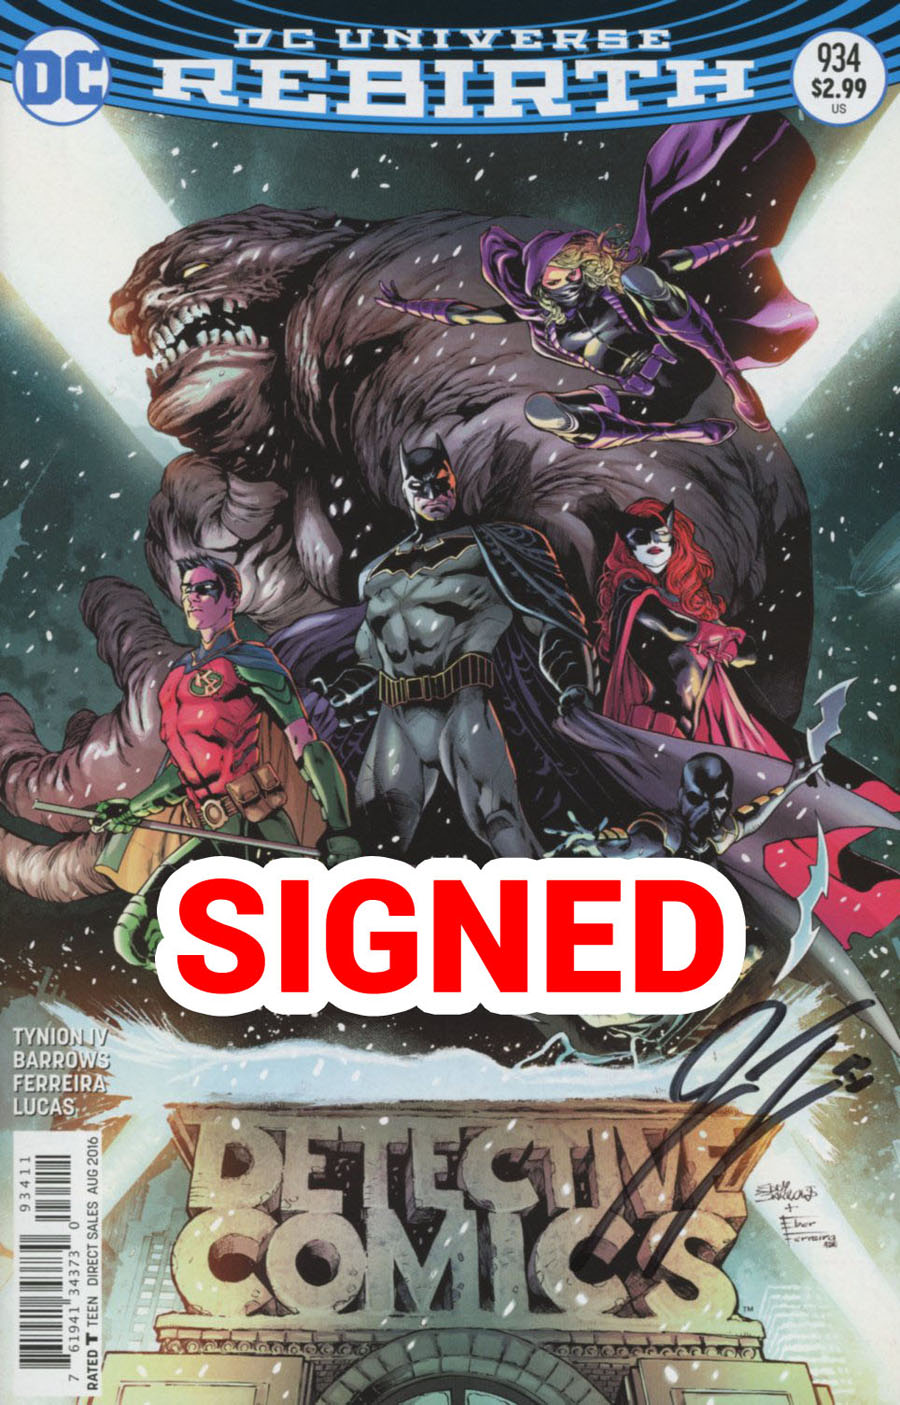 Detective Comics Vol 2 #934 Cover D Regular Eddy Barrows & Eber Ferreira Cover Signed By James Tynion IV